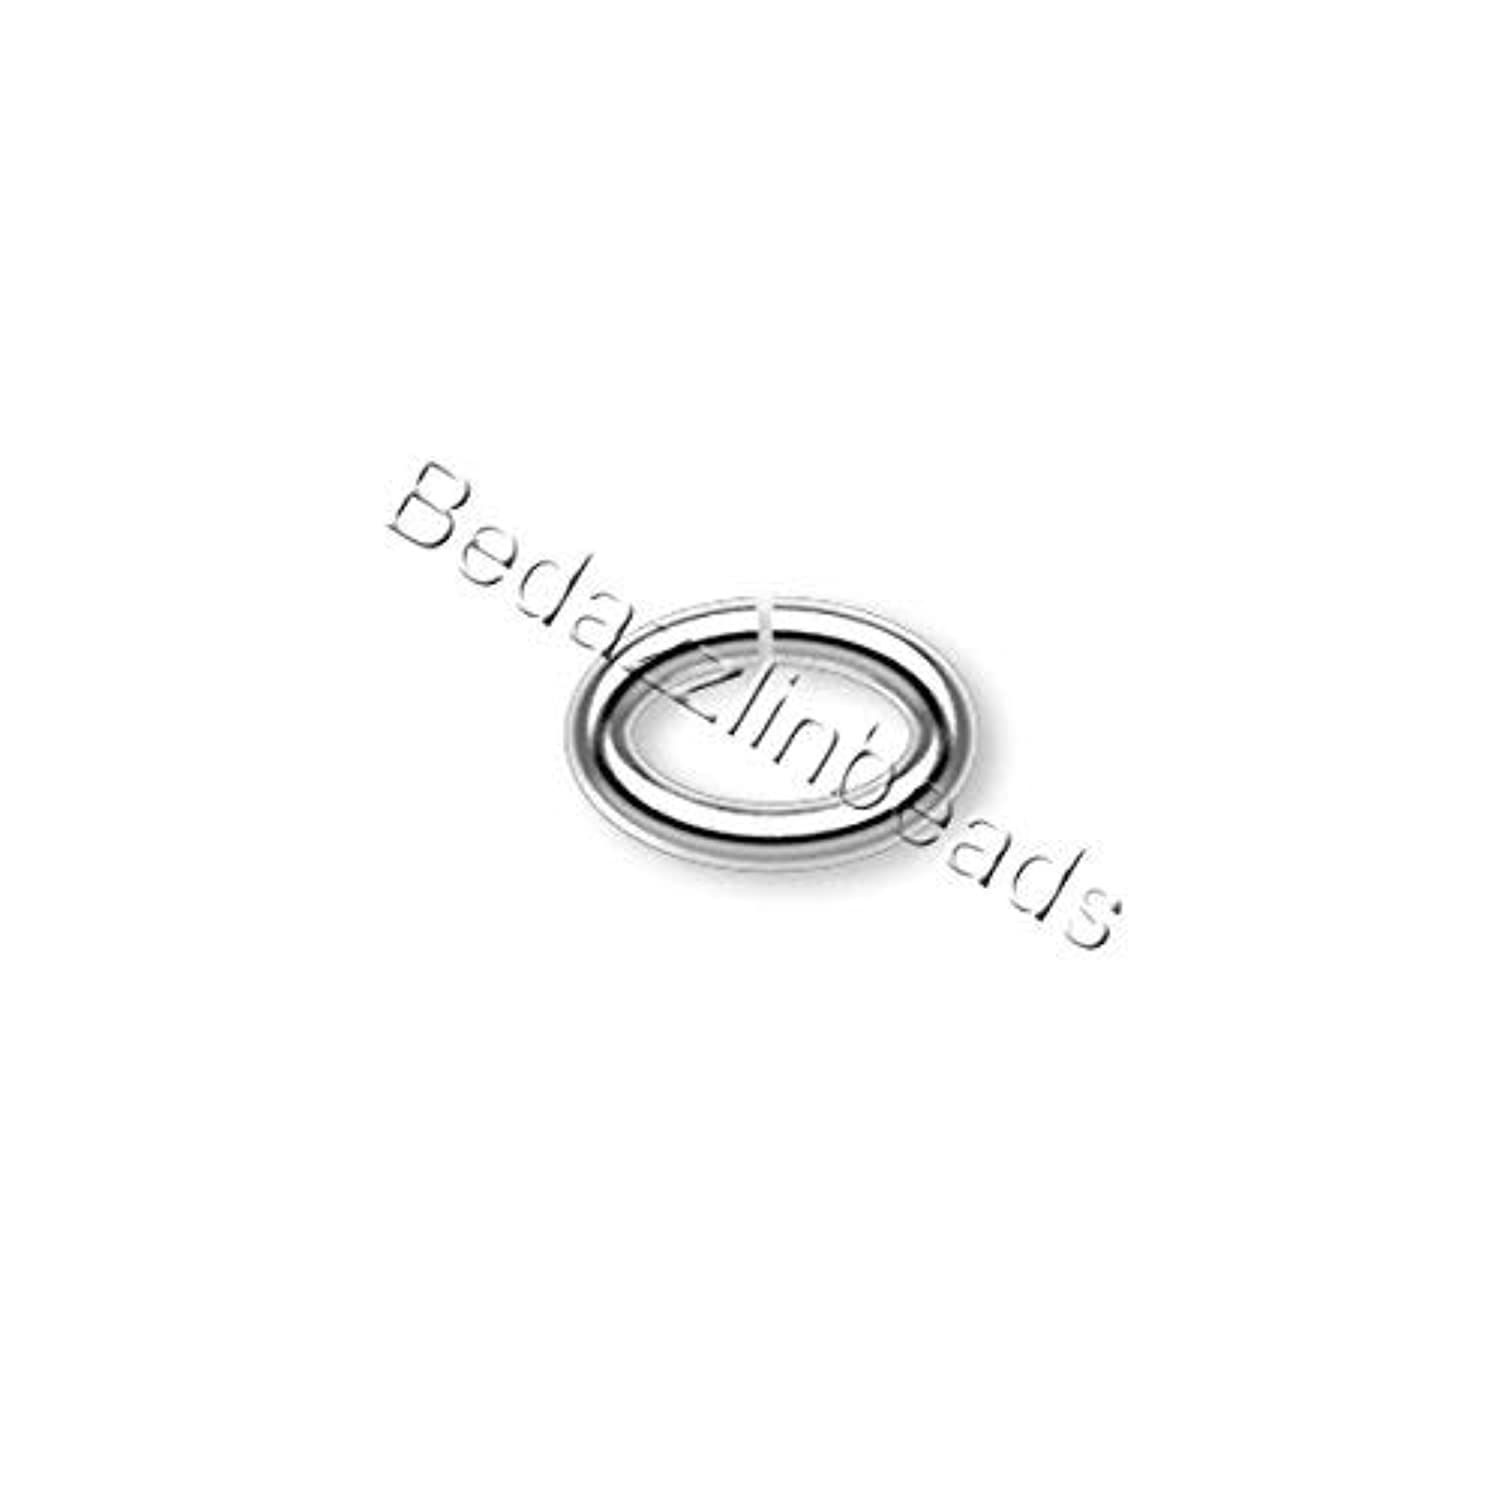 Lot of 100 Oval 18 Gauge Open Jumpring Jewelry Ring Findings (8mm x 6mm, Silver Plated) ivchocidmaxwkt